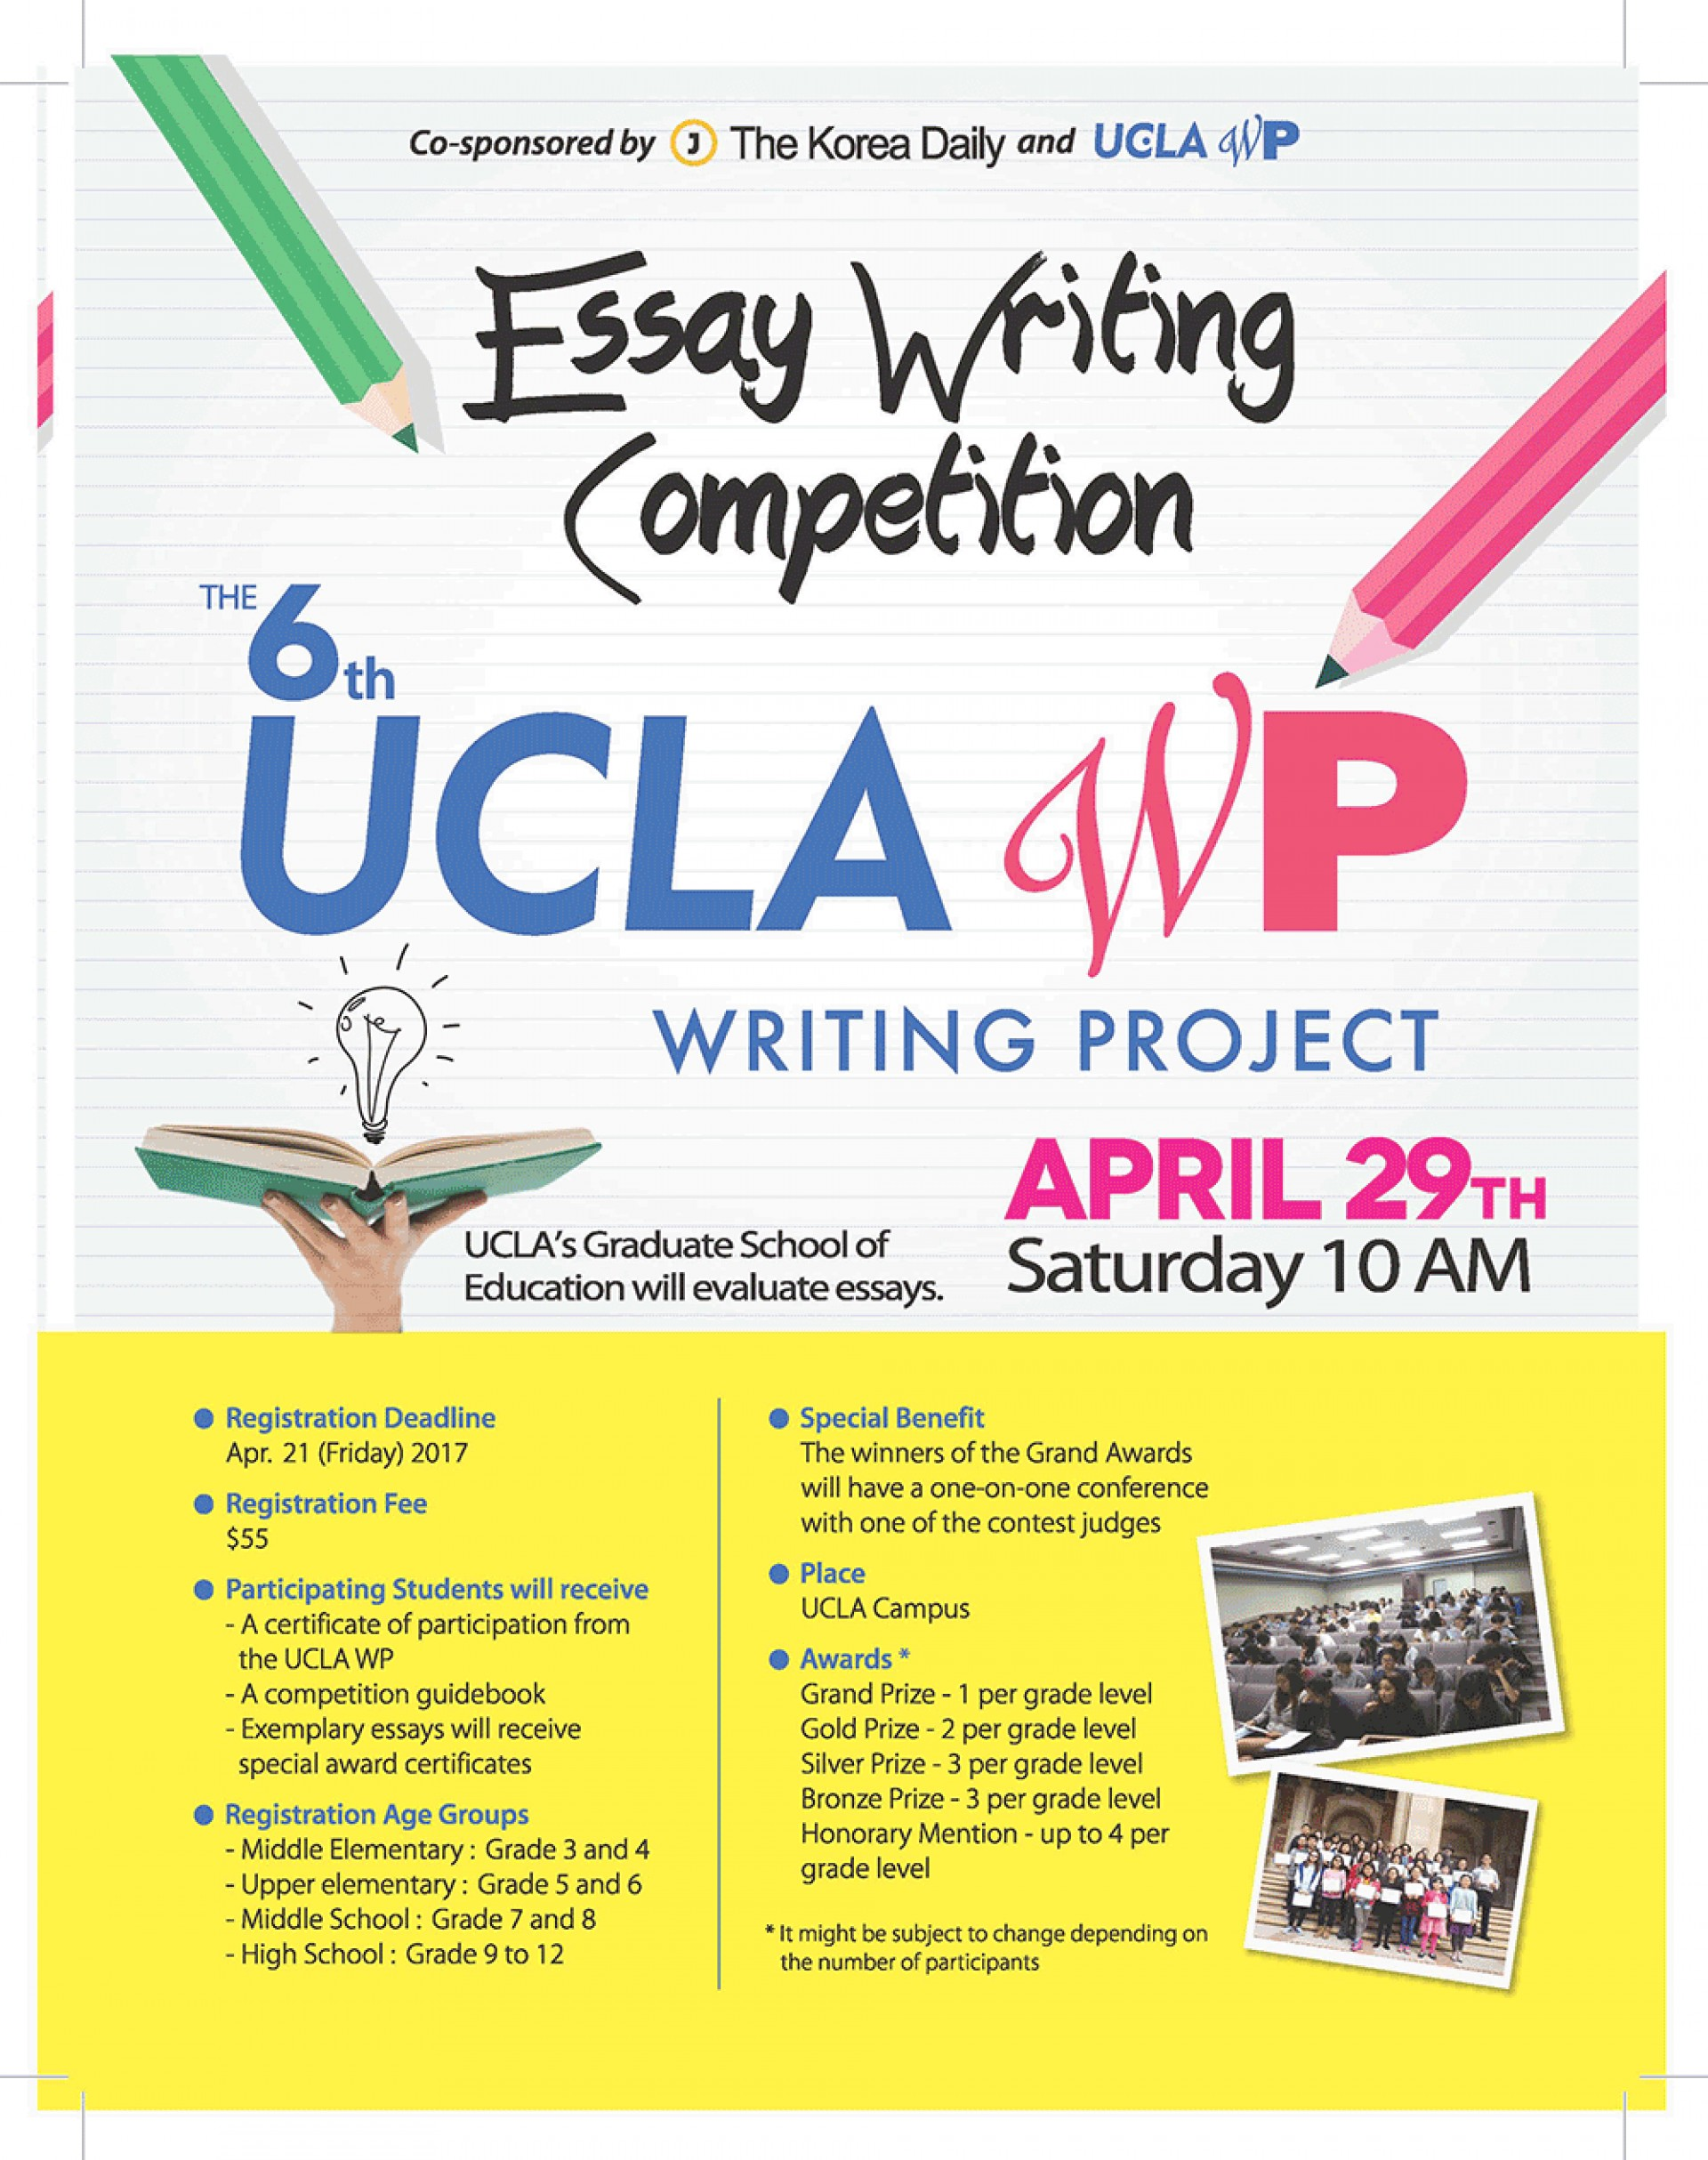 008 Essay Writing Contest Example Uclakoreandaily Incredible Competition For College Students By Essayhub Sample Mechanics 1920